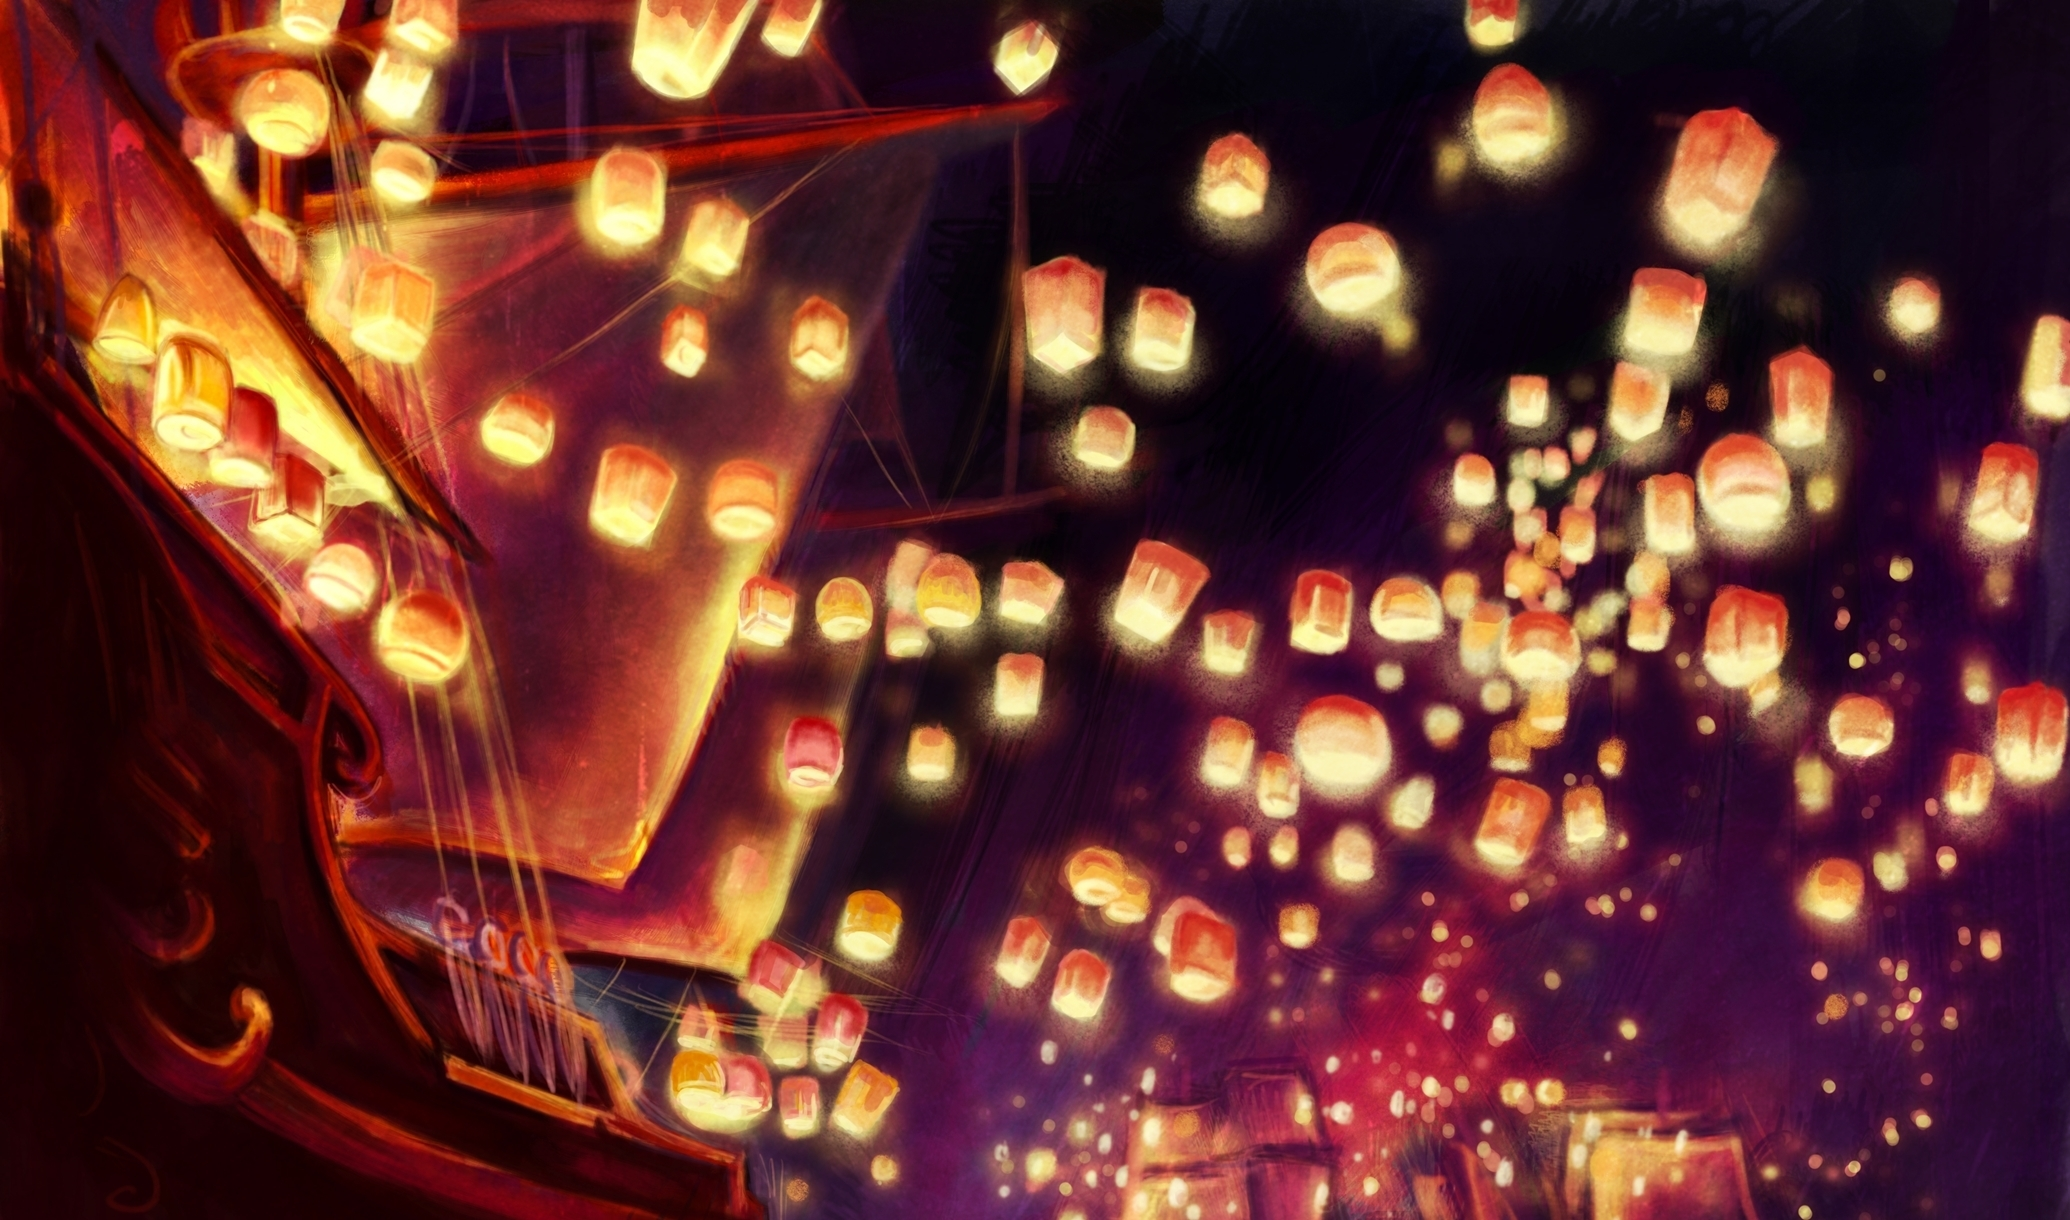 Download Disney Tangled Wallpapers Tangled Lanterns Wallpaper Hd 3072672 Hd Wallpaper Backgrounds Download